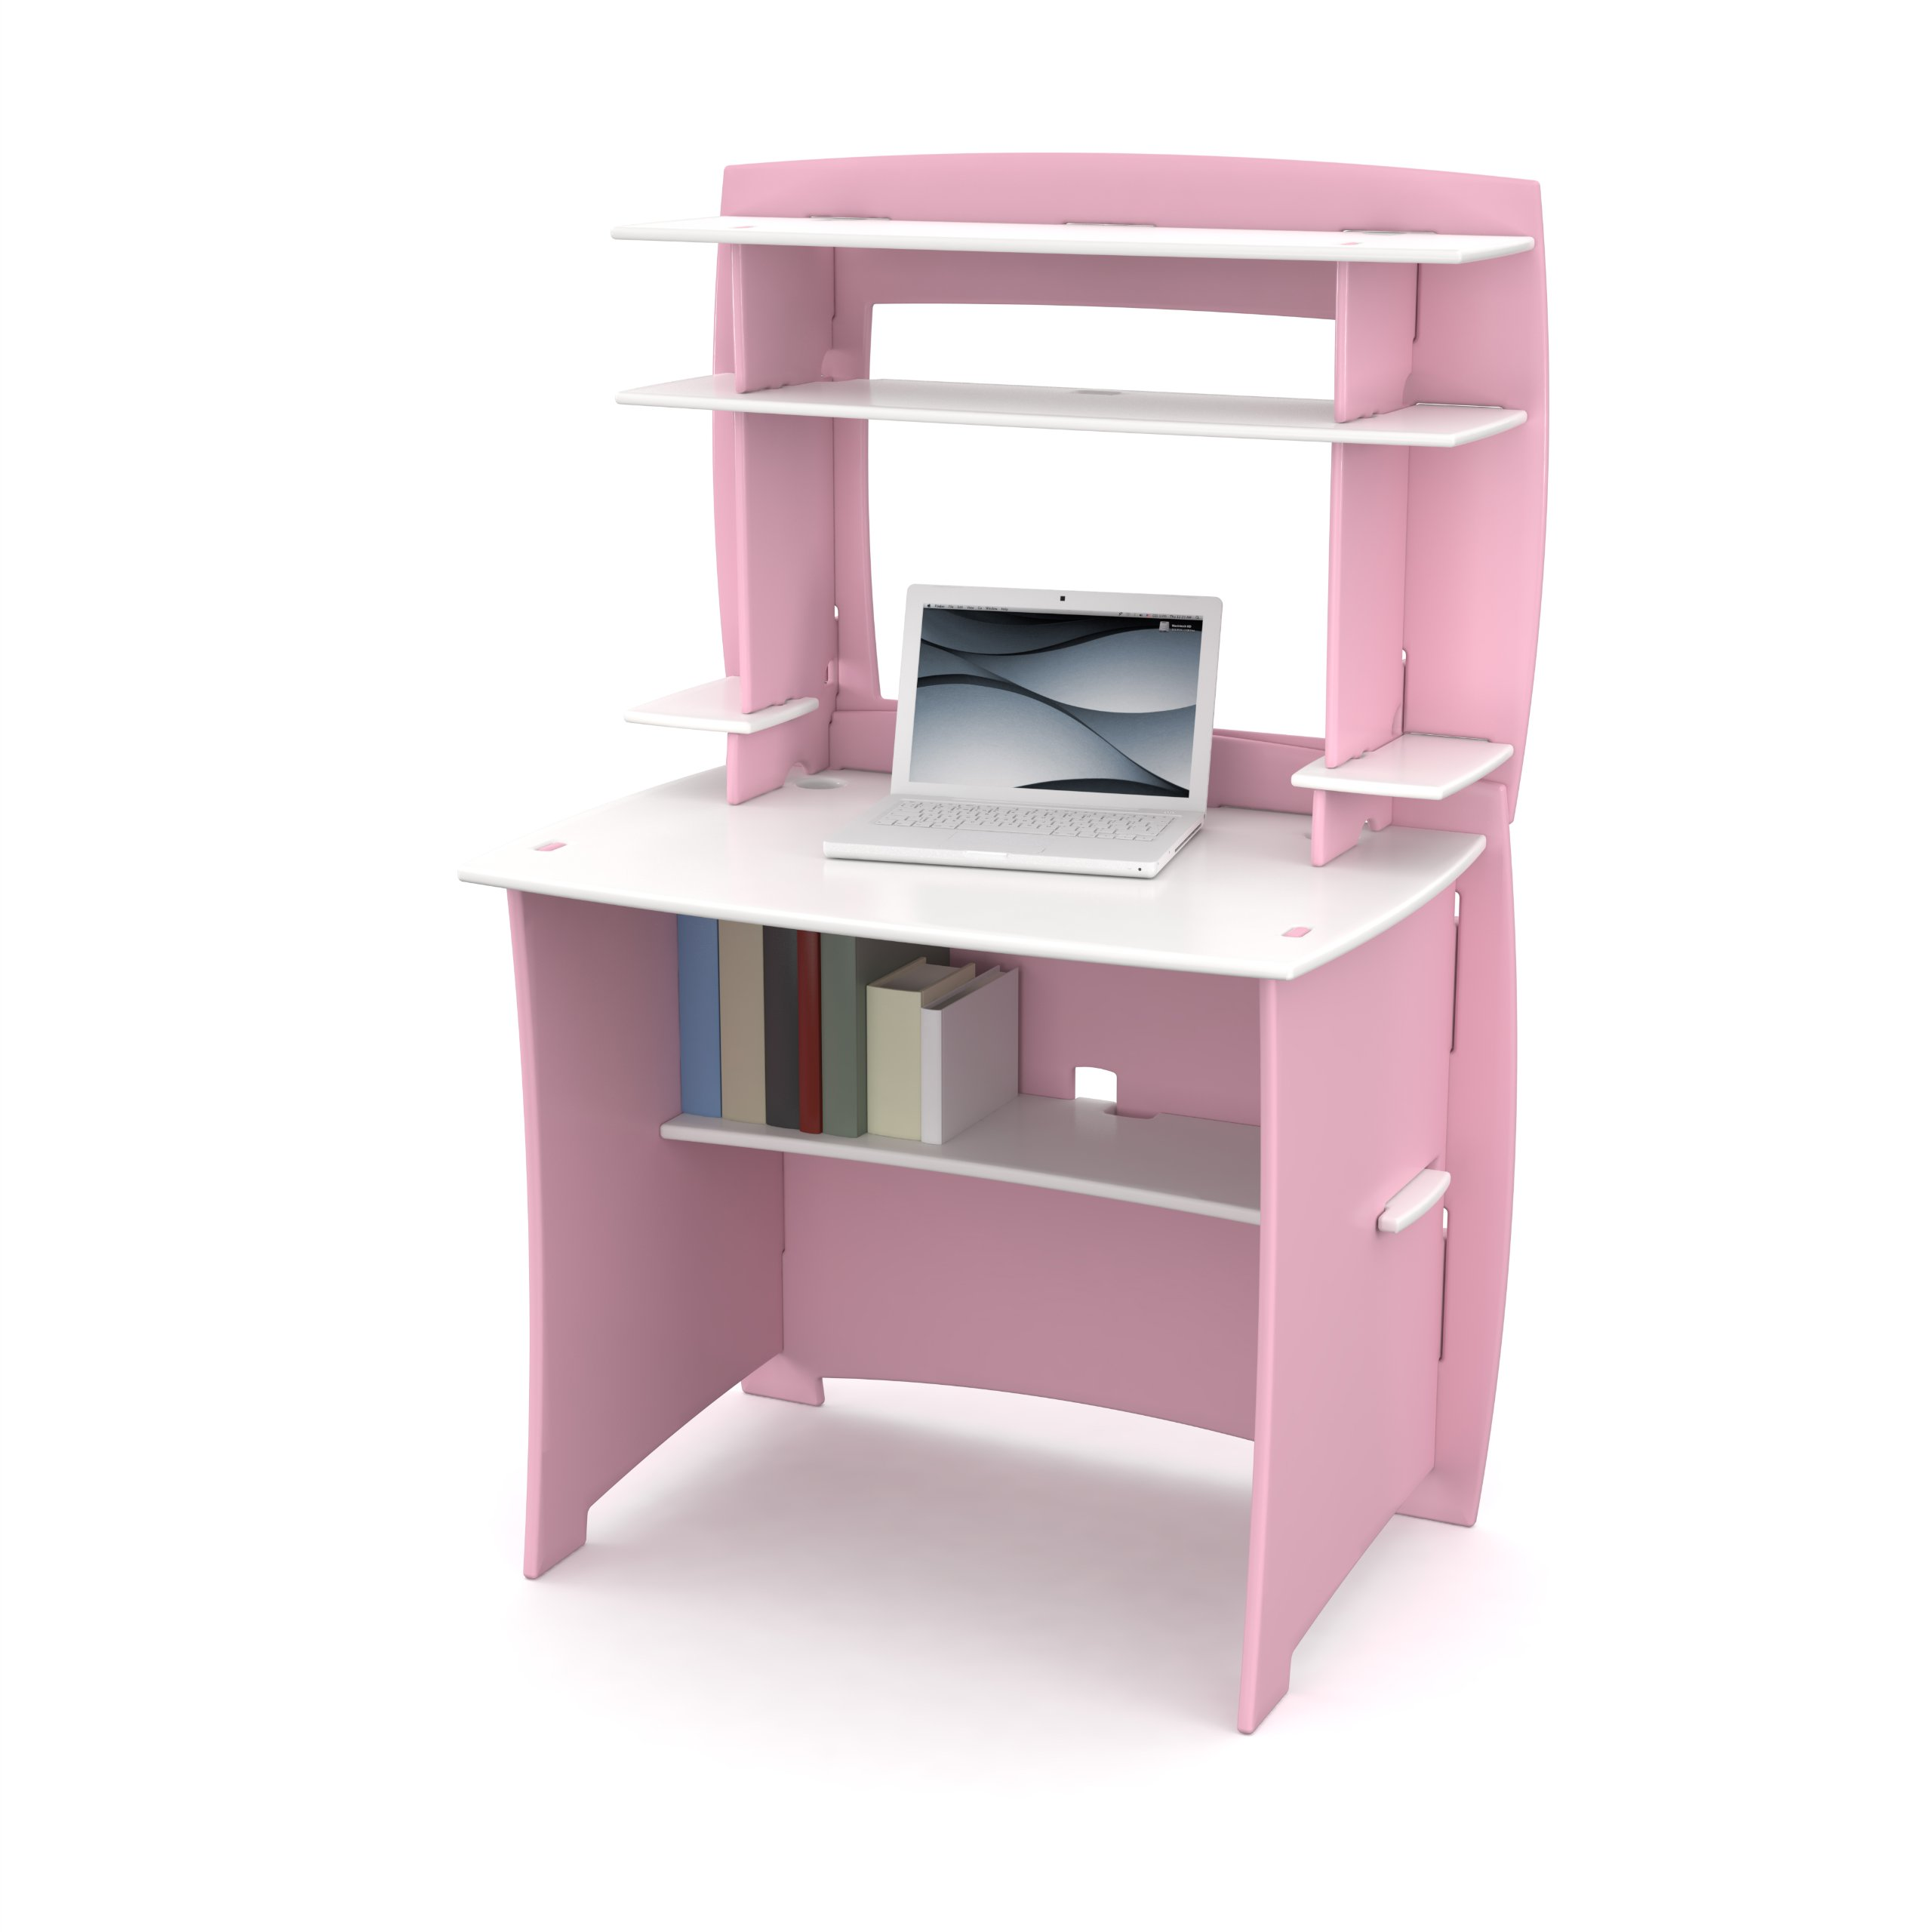 Legaré Furniture Children's Desk with Hutch and Adjustable Shelves, Pink and White by Legare